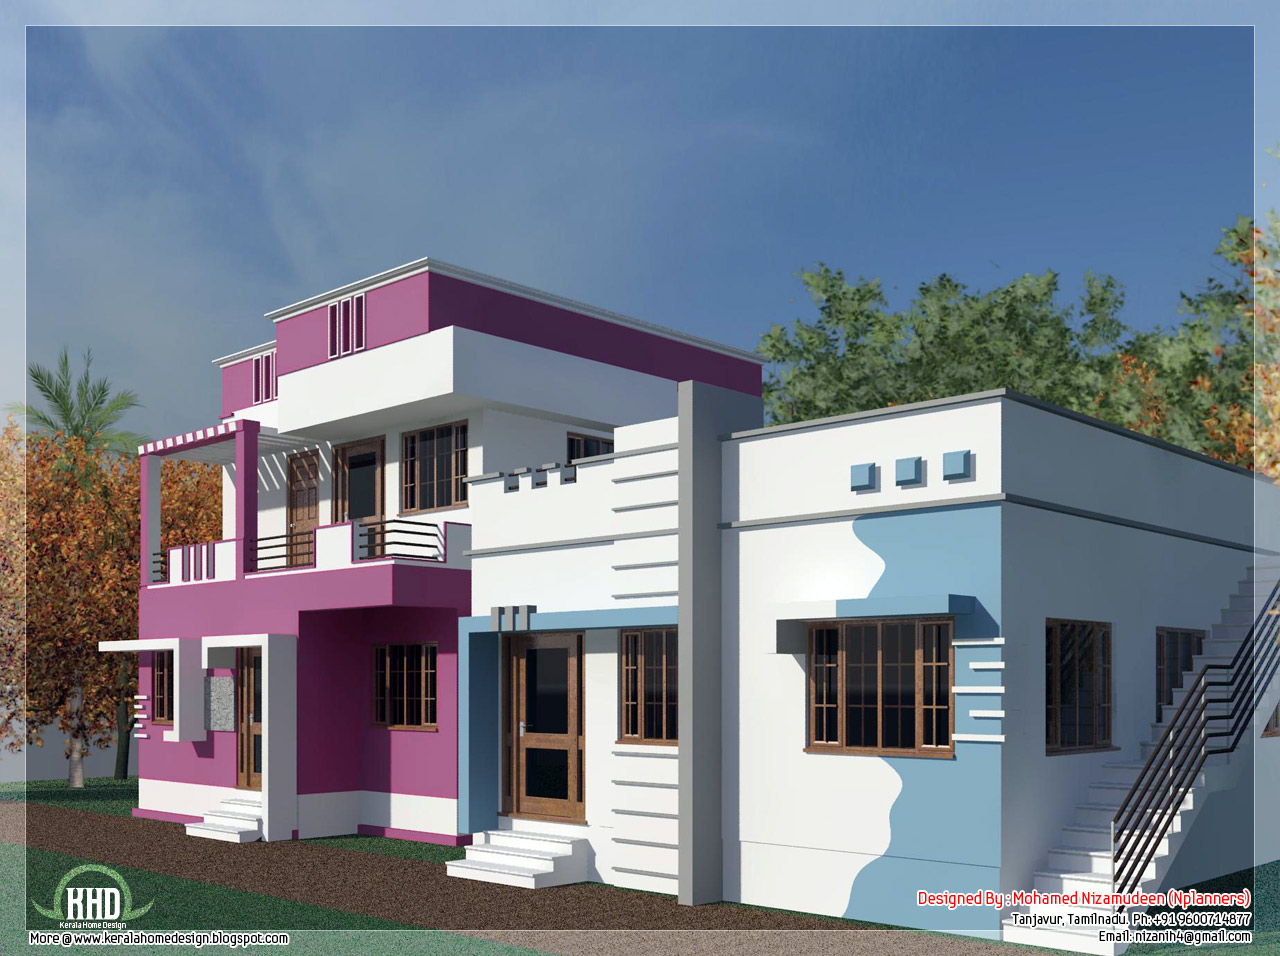 Tamilnadu Model Home Design In 3000 Kerala Home Design And Floor Plans